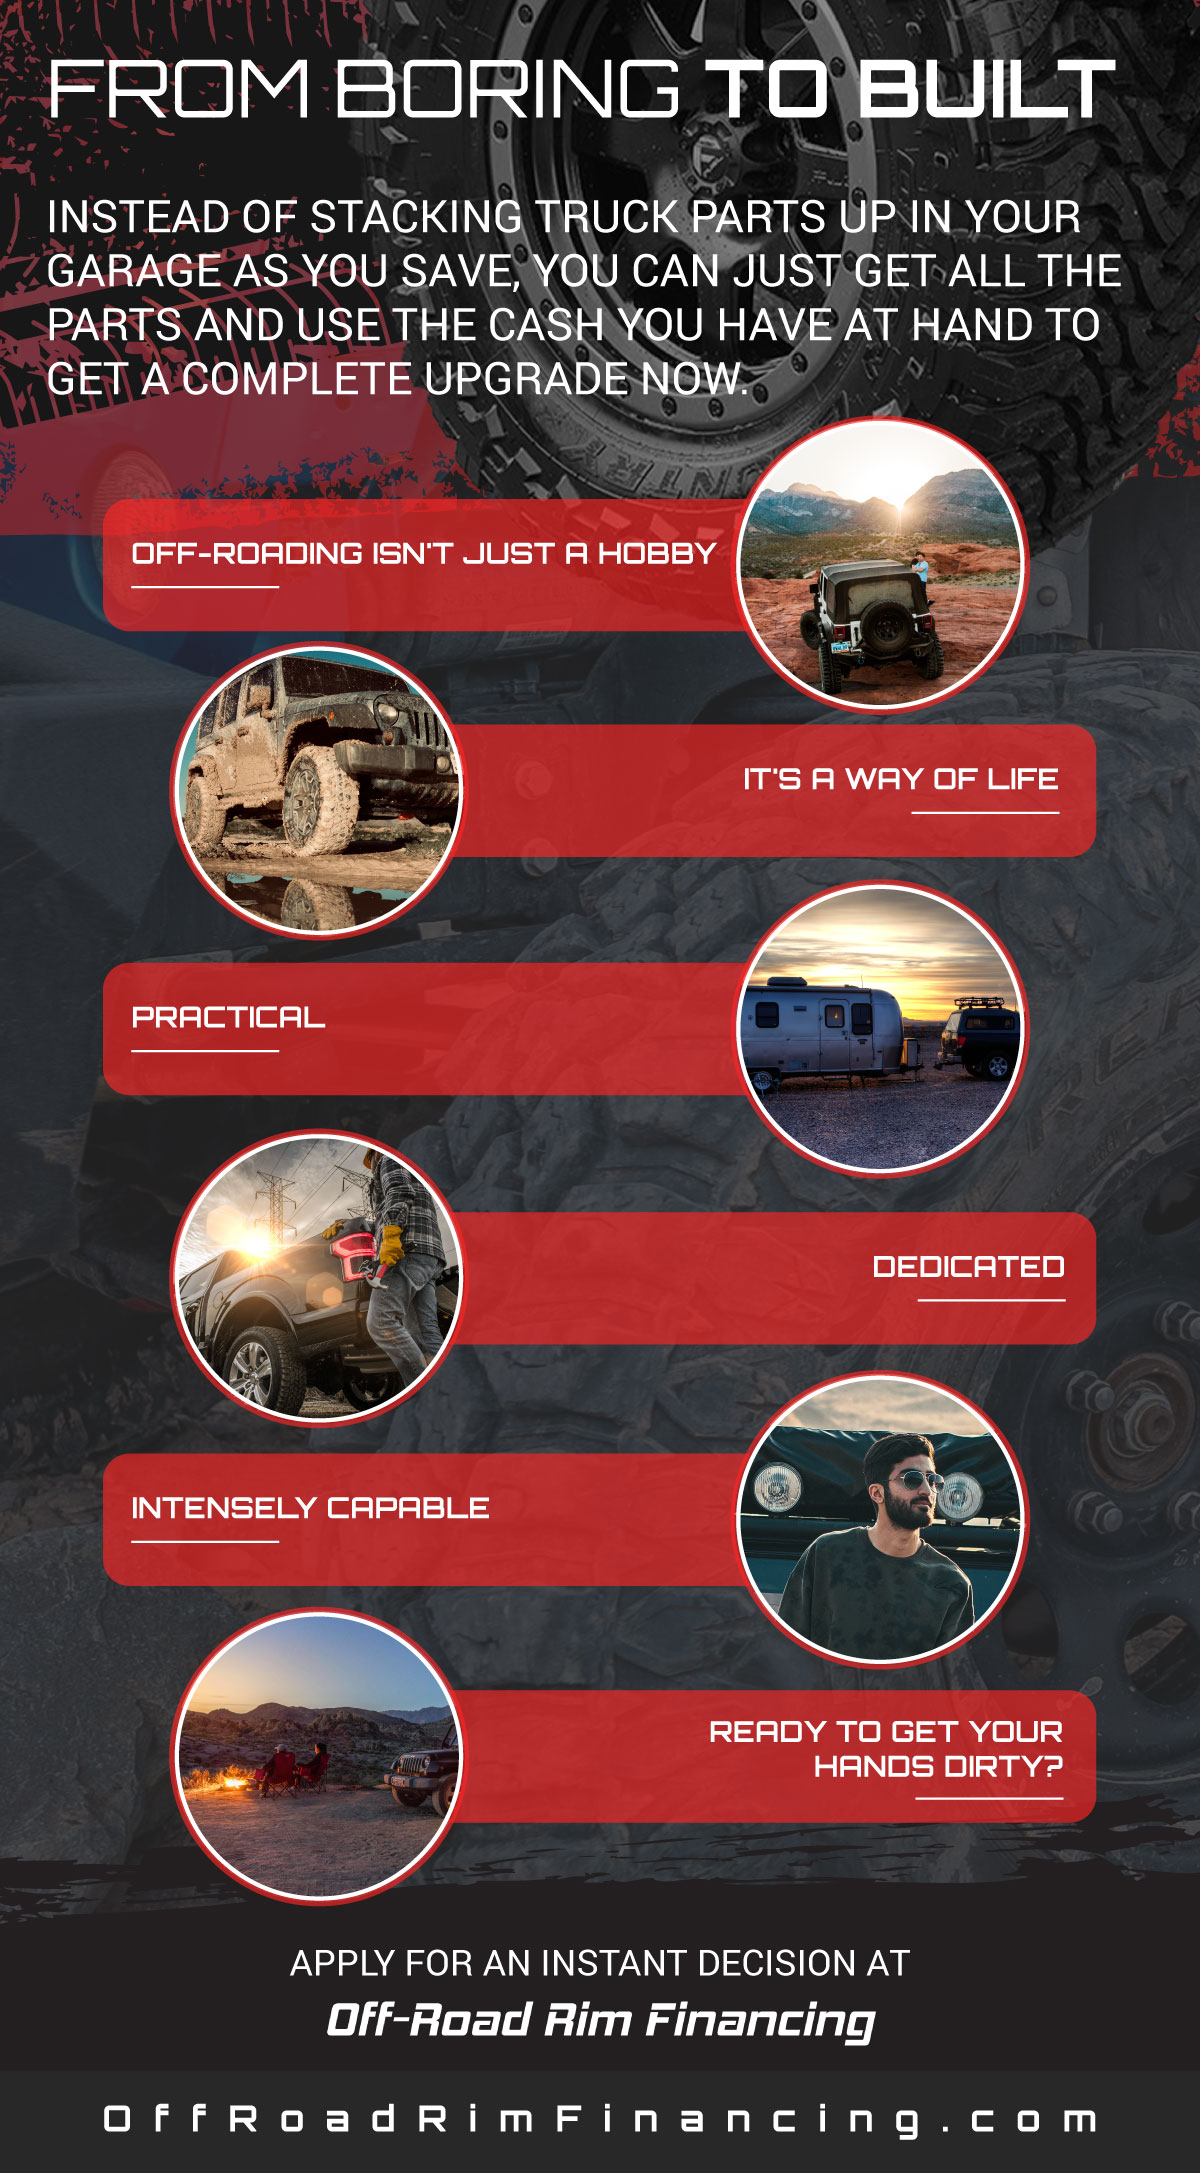 From Boring to BUILT Infographic